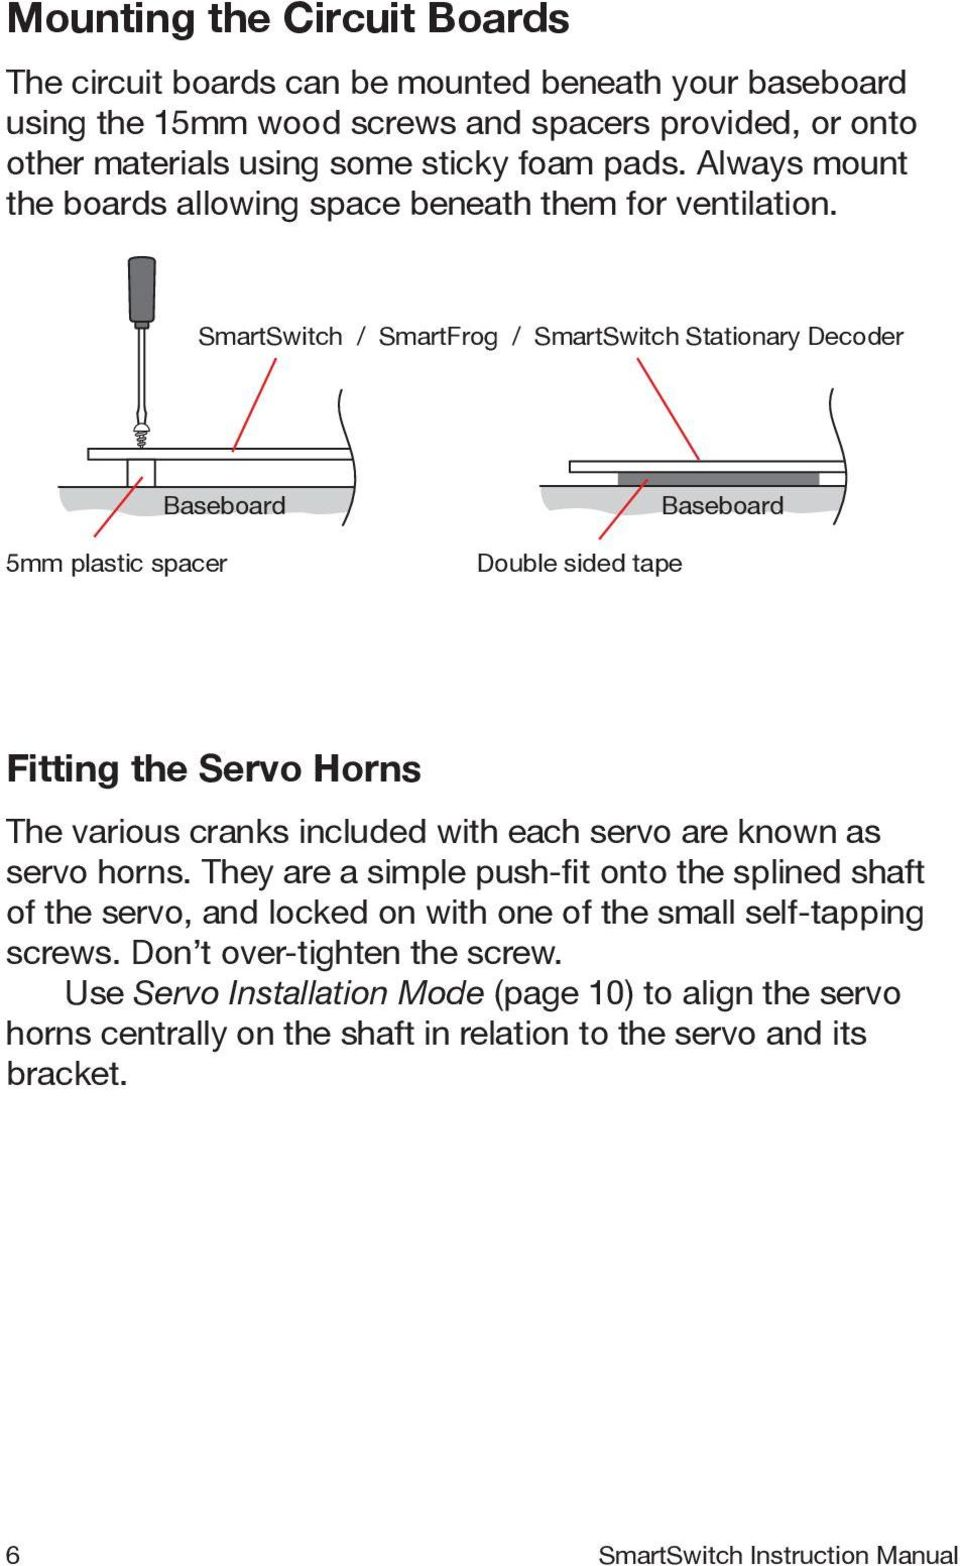 Instruction Manual This Covers The Use Of Smartswitch Servo Tortoise Switch Machine Wiring Diagram On Push Switches 6 Smartfrog Stationary Decoder Baseboard 5mm Plastic Spacer Double Sided Tape Fitting